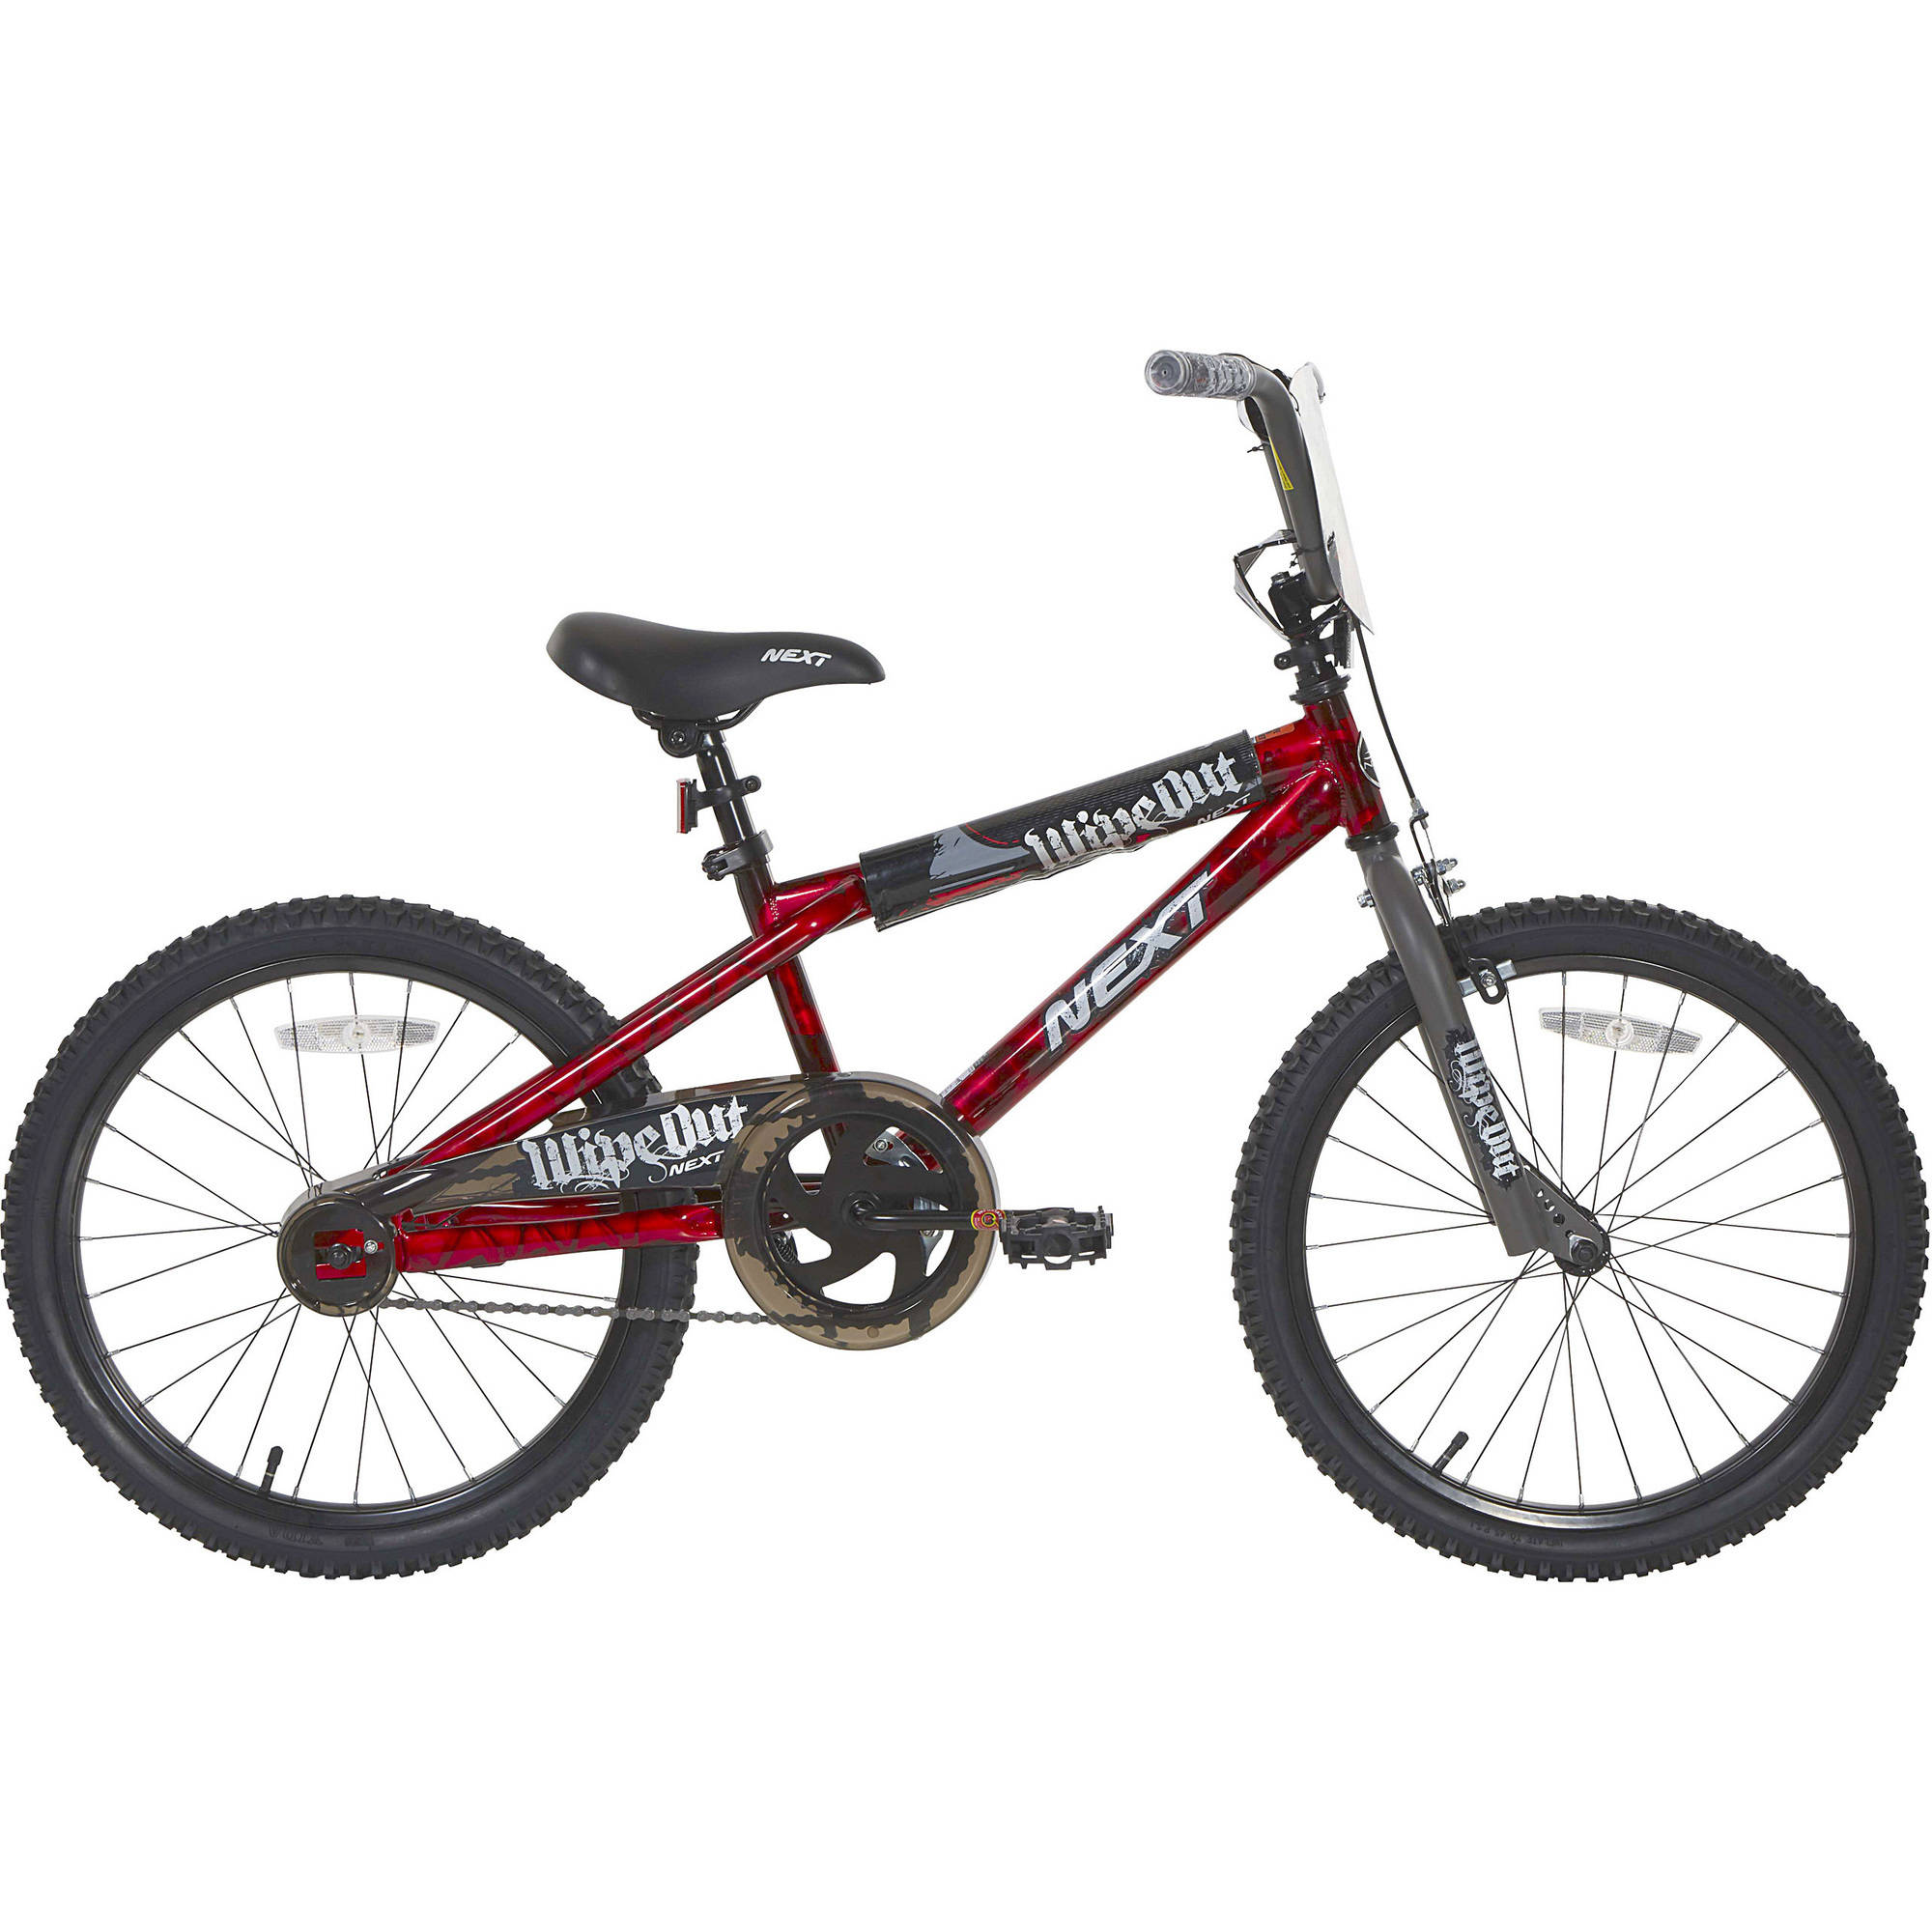 "20"" Next Boys' Wipe Out BMX Bike, Red - Walmart.com"